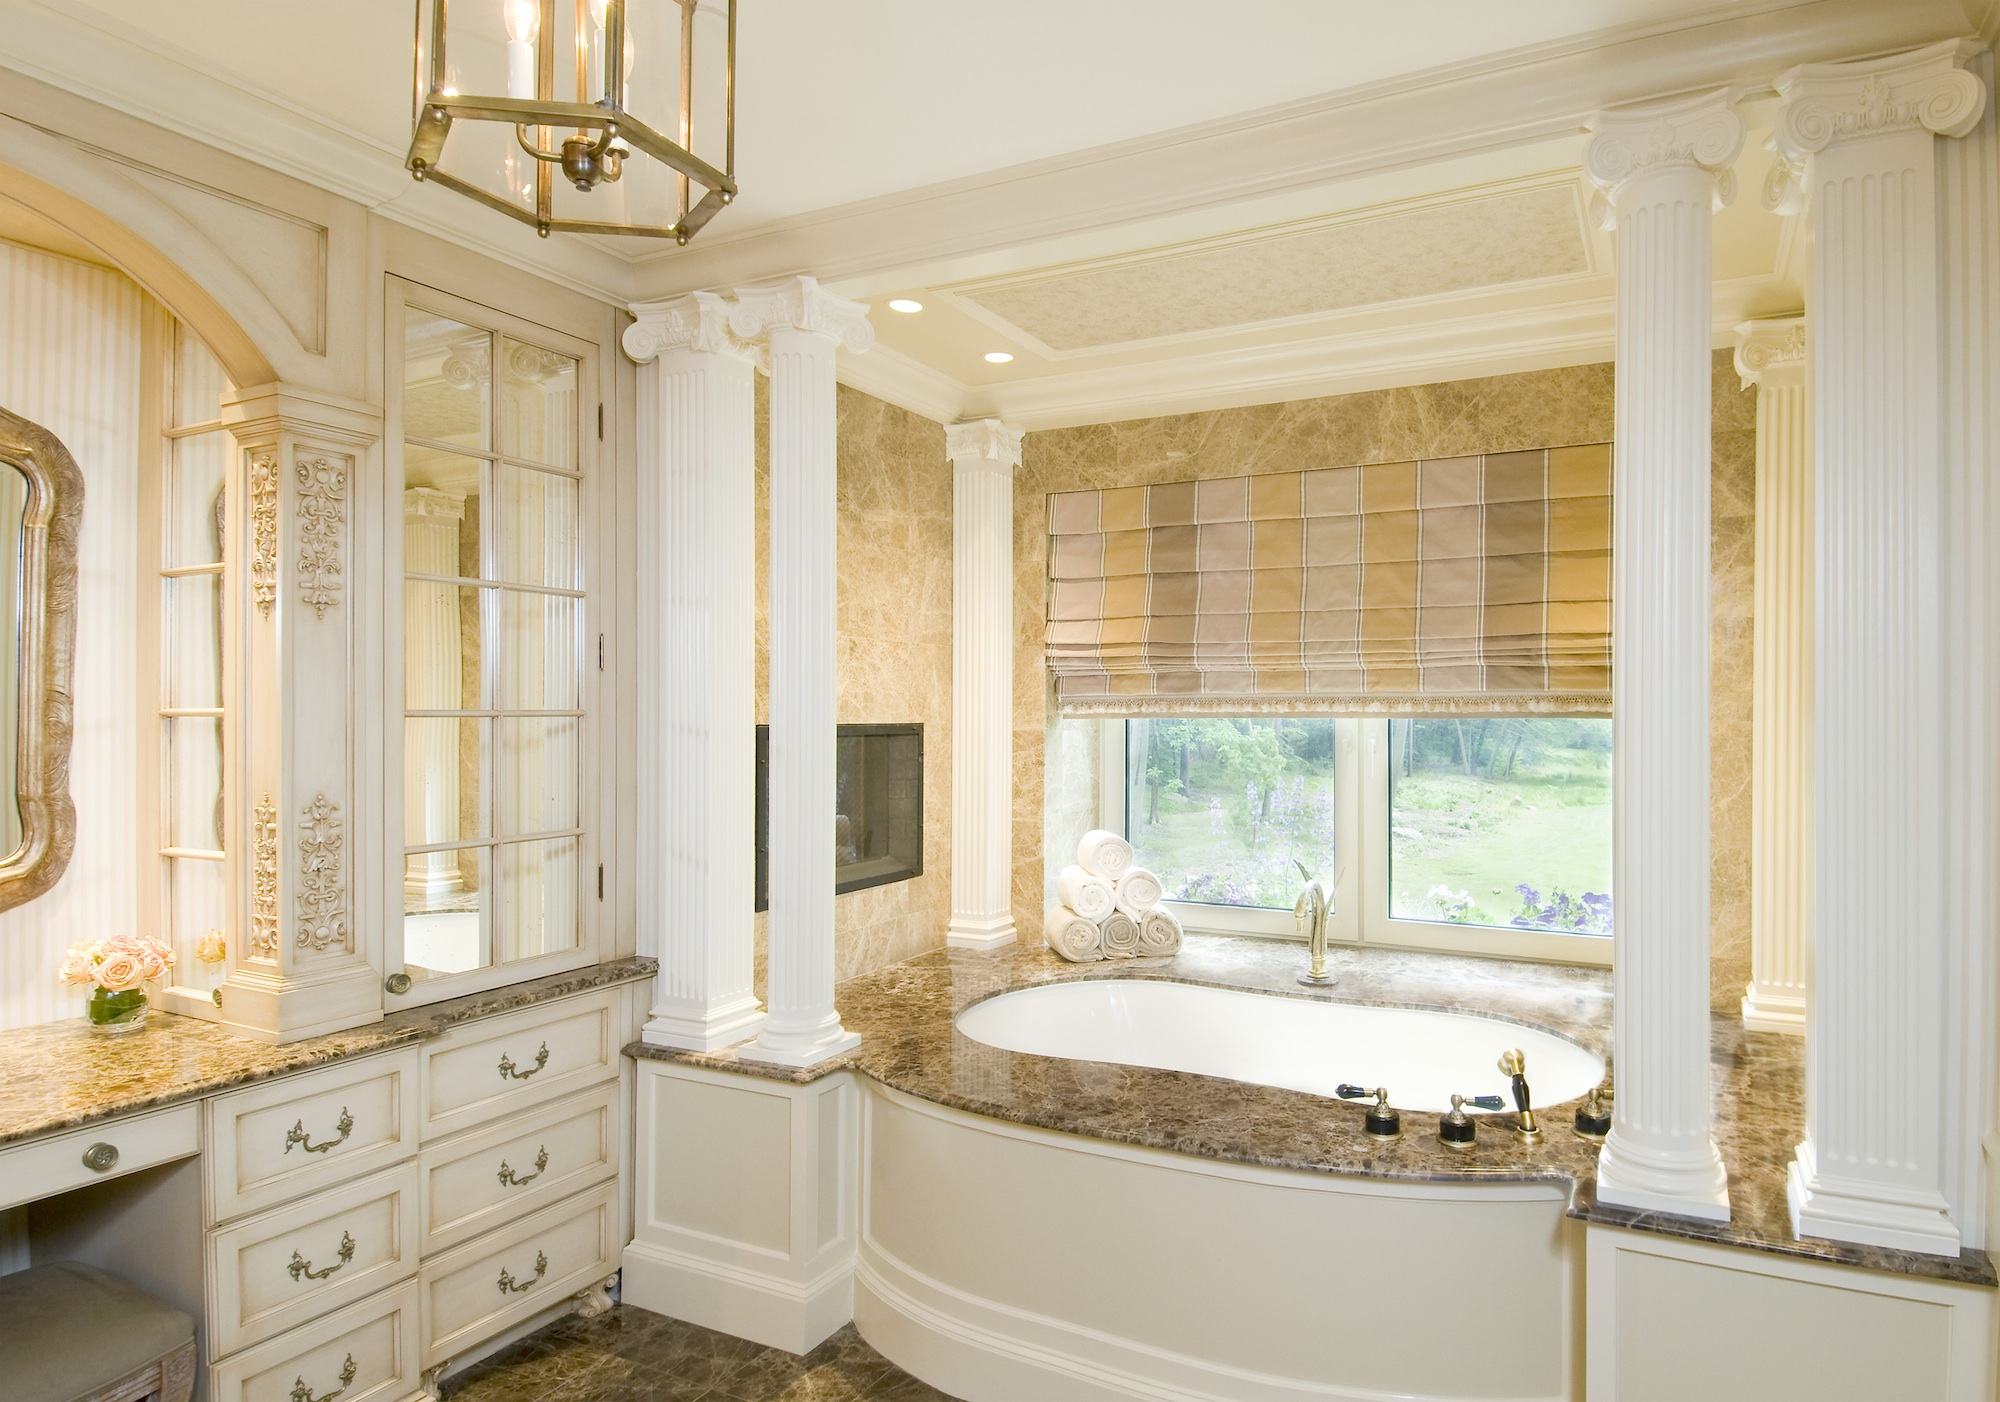 Luxury homes interior bathrooms - Classical Master Bath